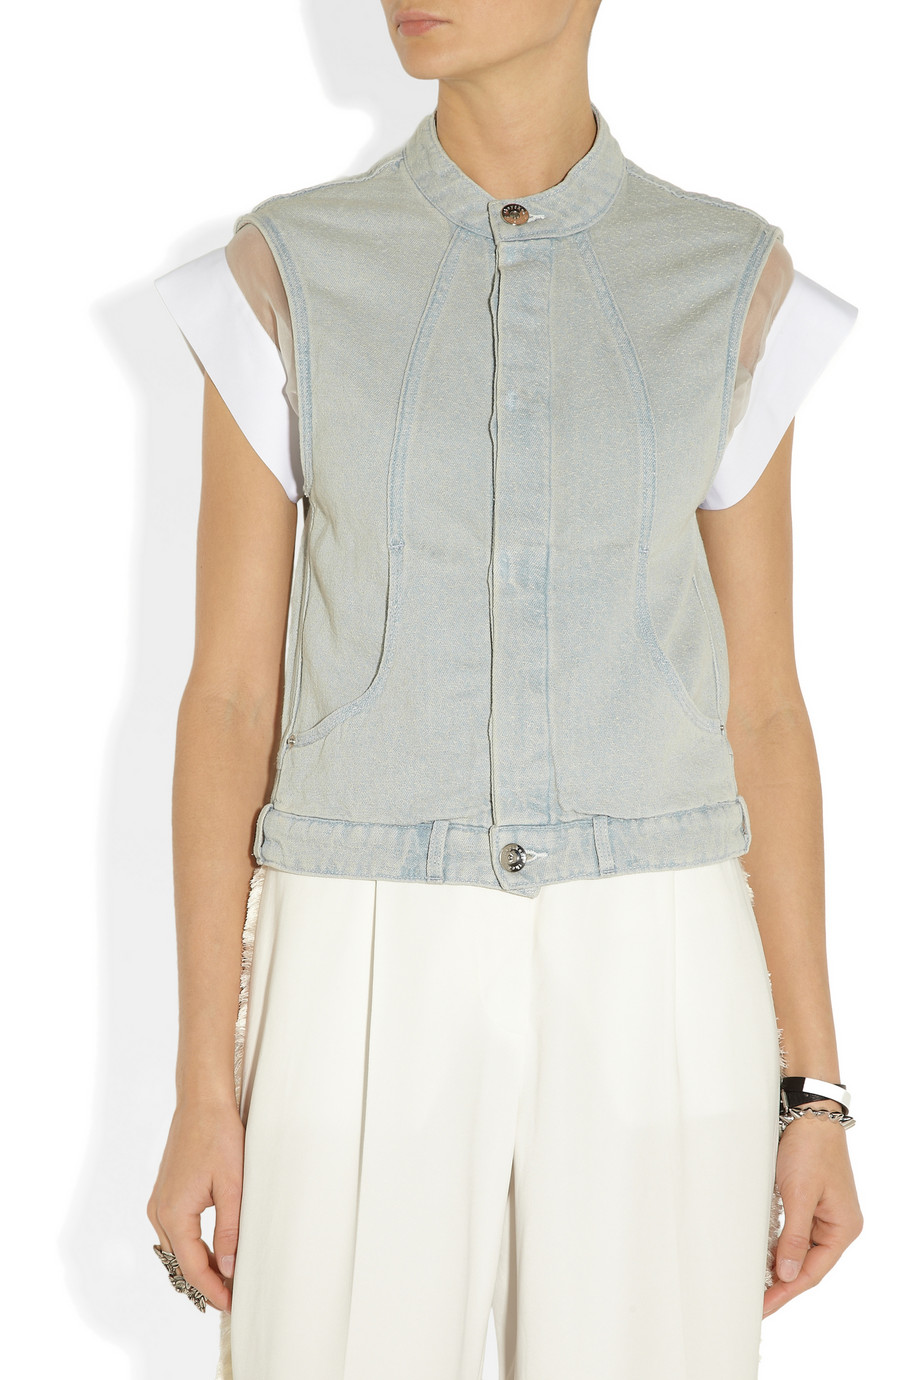 Theyskens' Theory Jagger textured linen and cotton-blend vest.